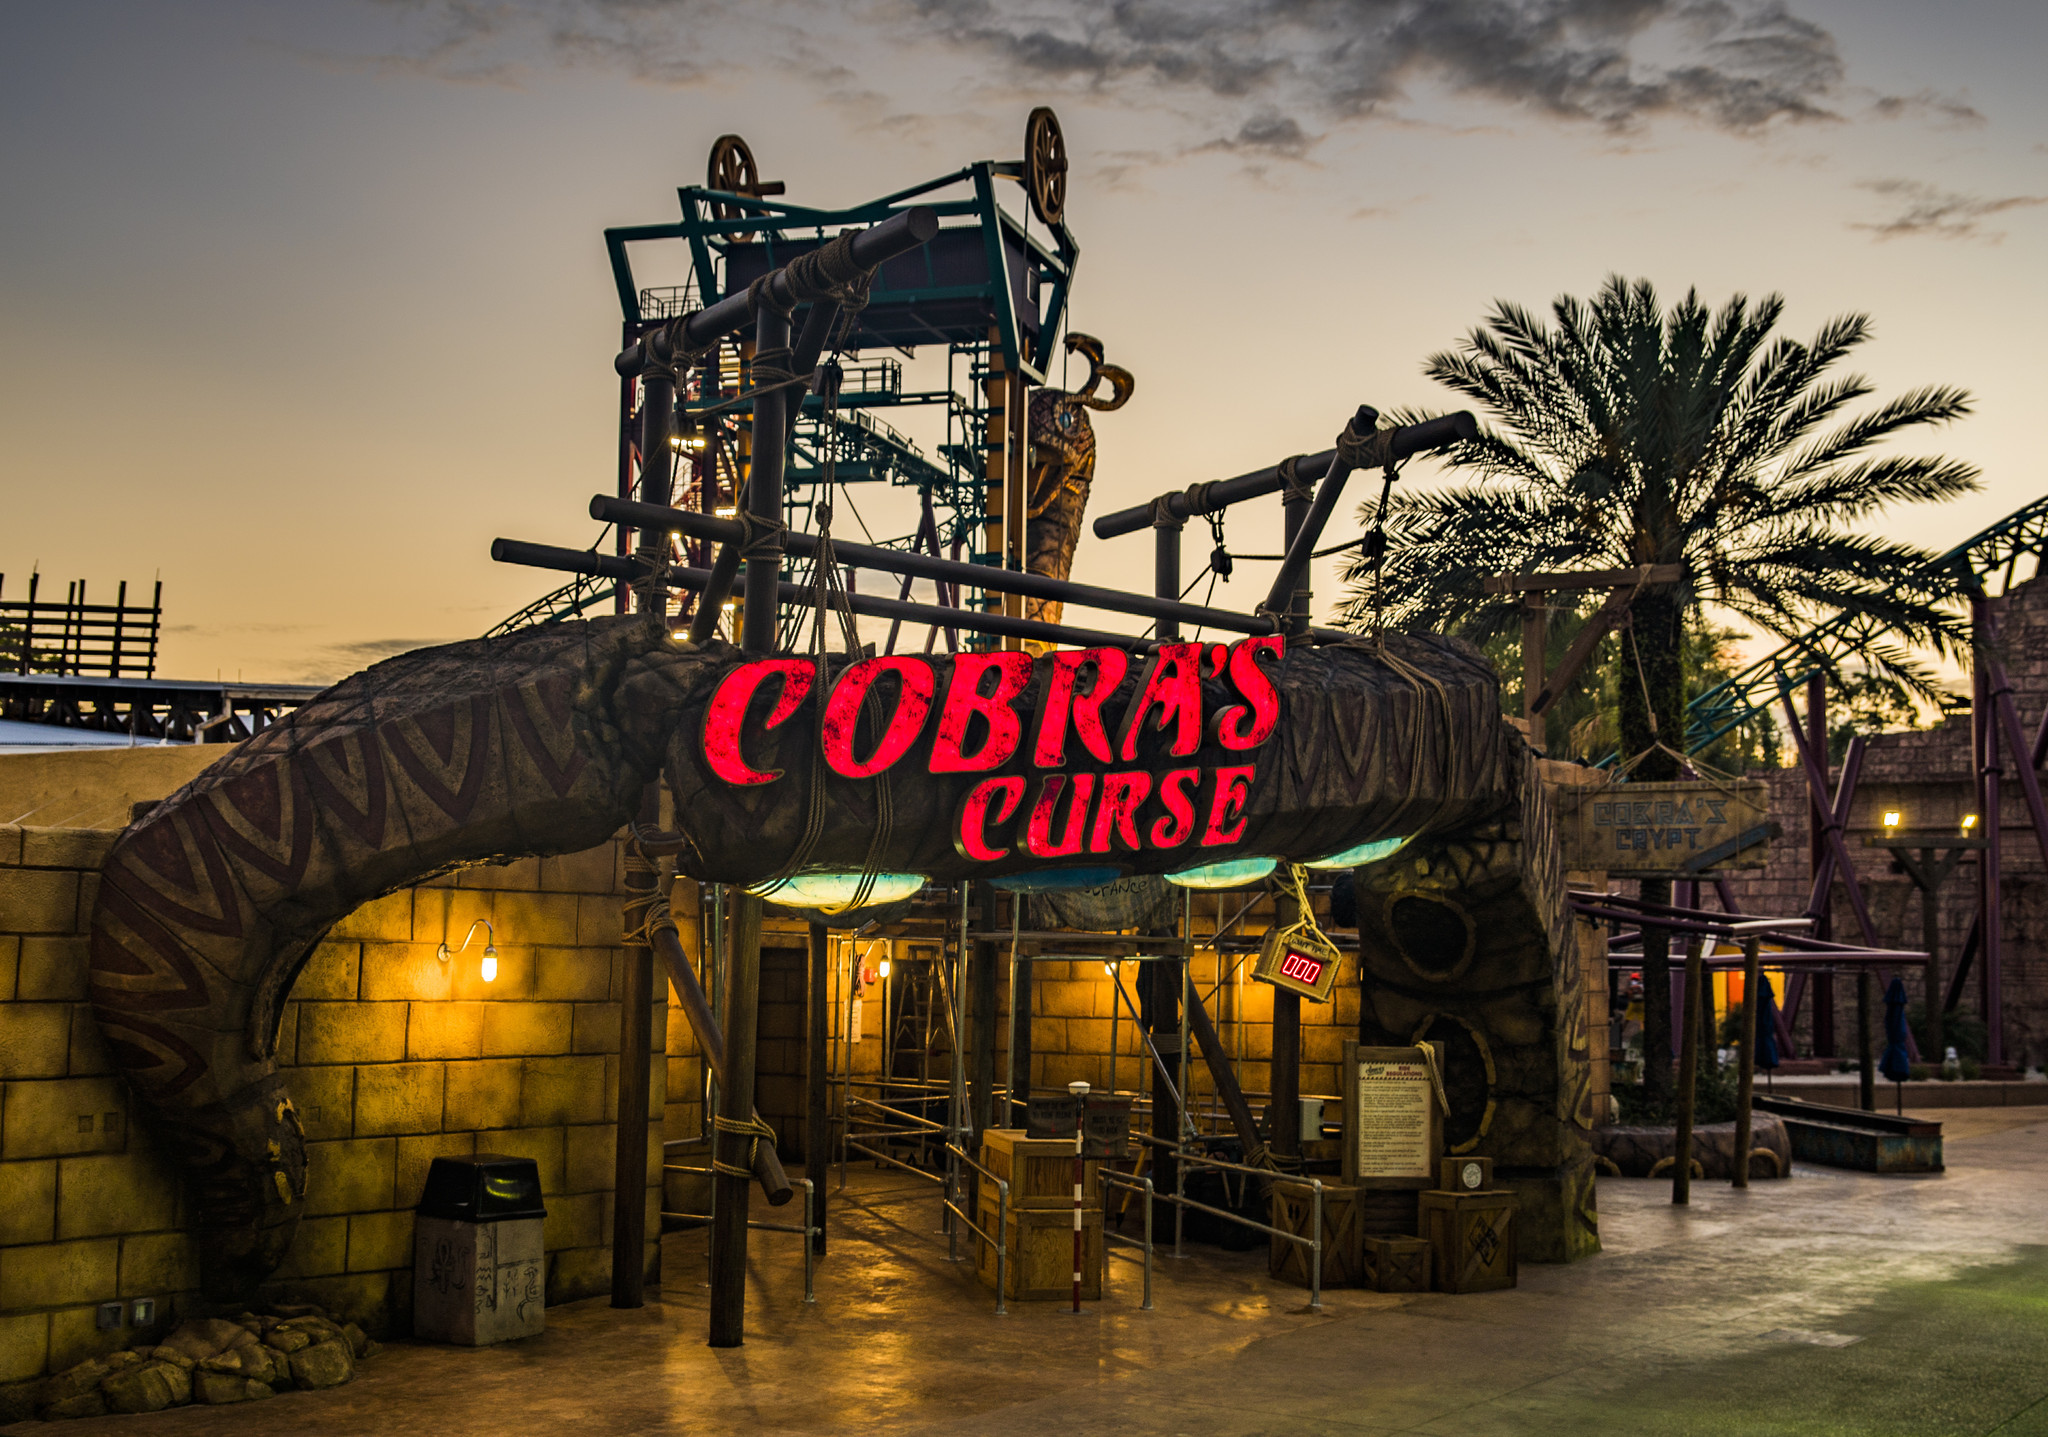 Busch gardens cobra 39 s curse to open june 17 orlando sentinel for Best day go busch gardens tampa